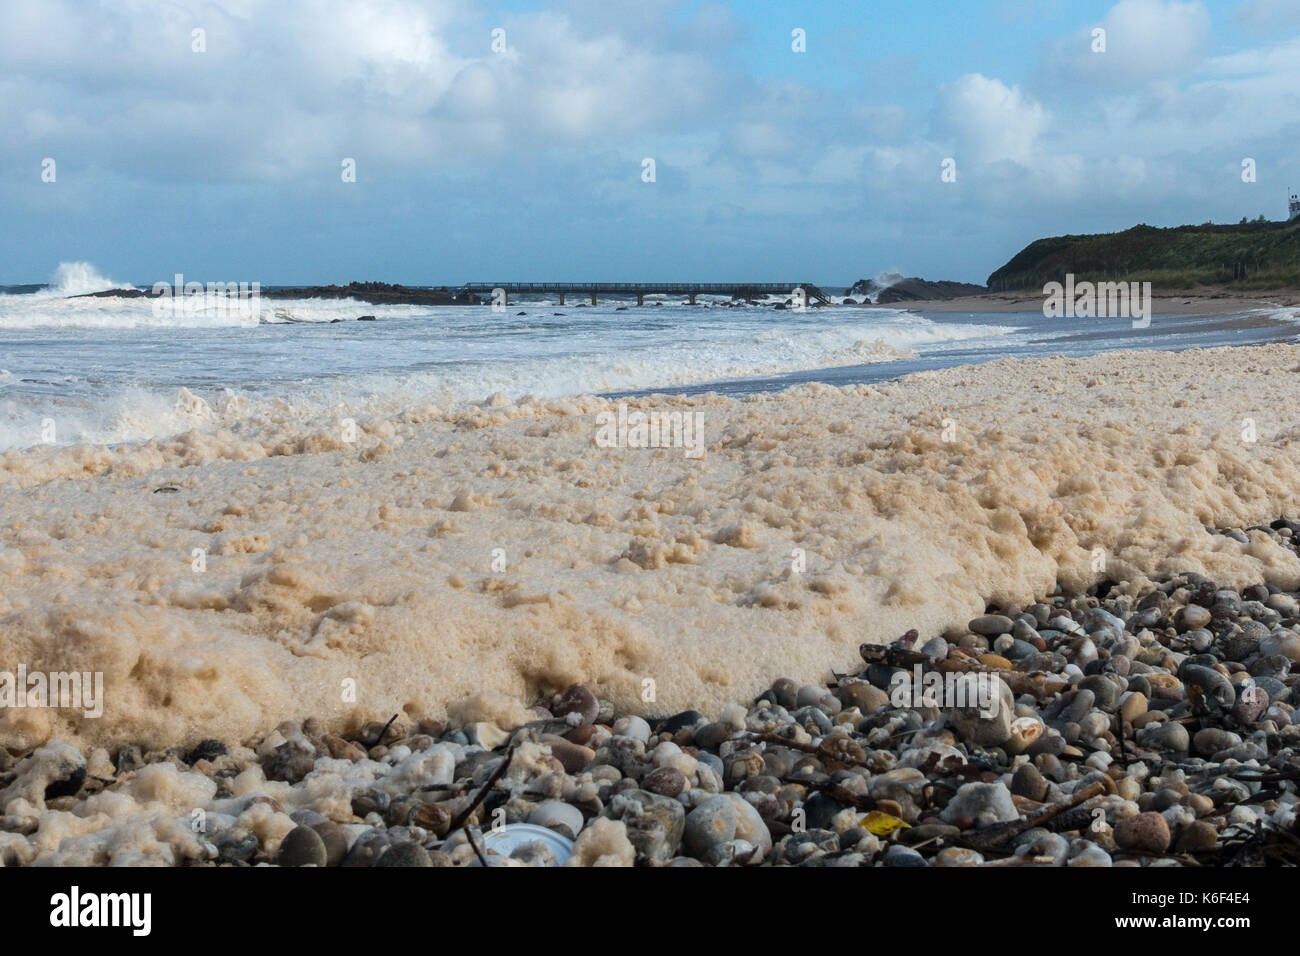 Cloudy skies, wild seascape and sea foam or spume washing up the pebble beach at Carrickmore Rd, Ballycastle, BT54, Northern Ireland,UK - Stock Image